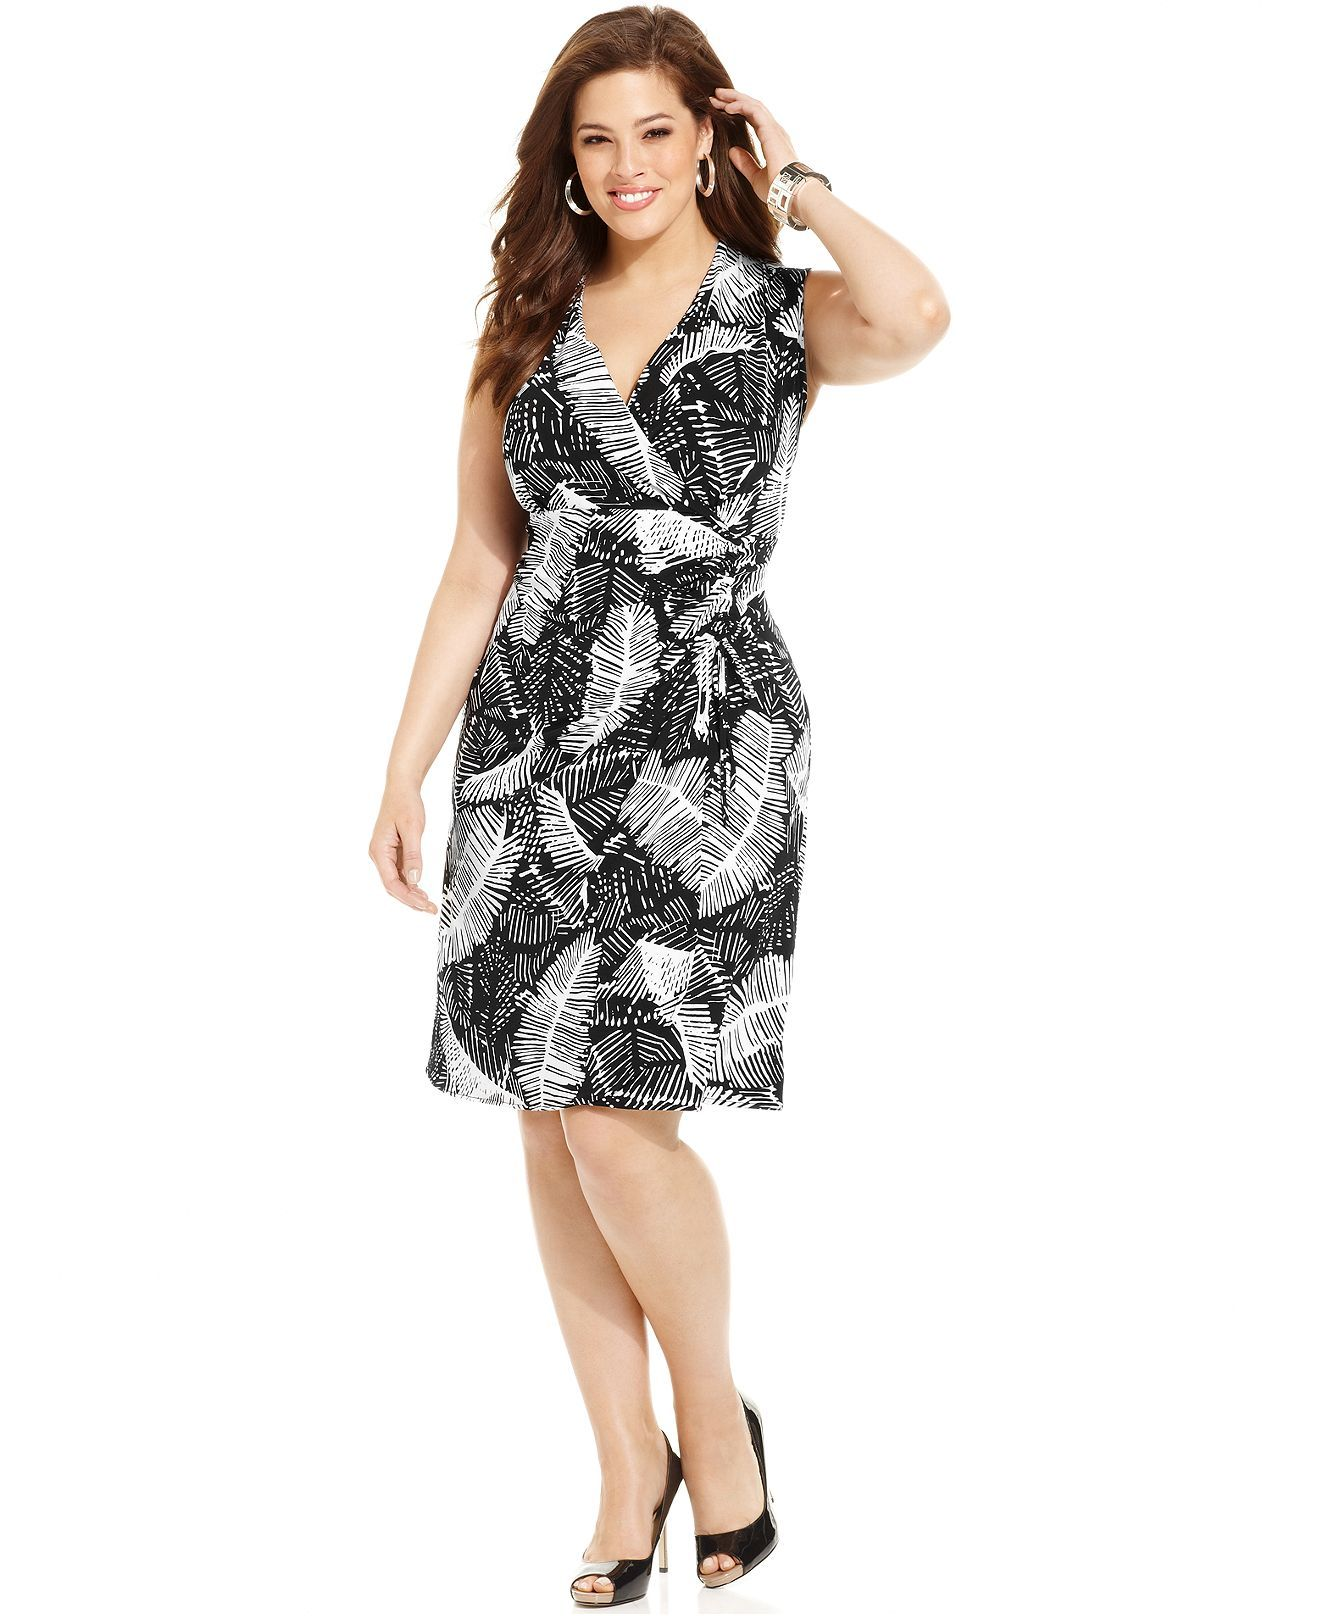 Jones New York Signature Plus Size Dress, Sleeveless Printed ...